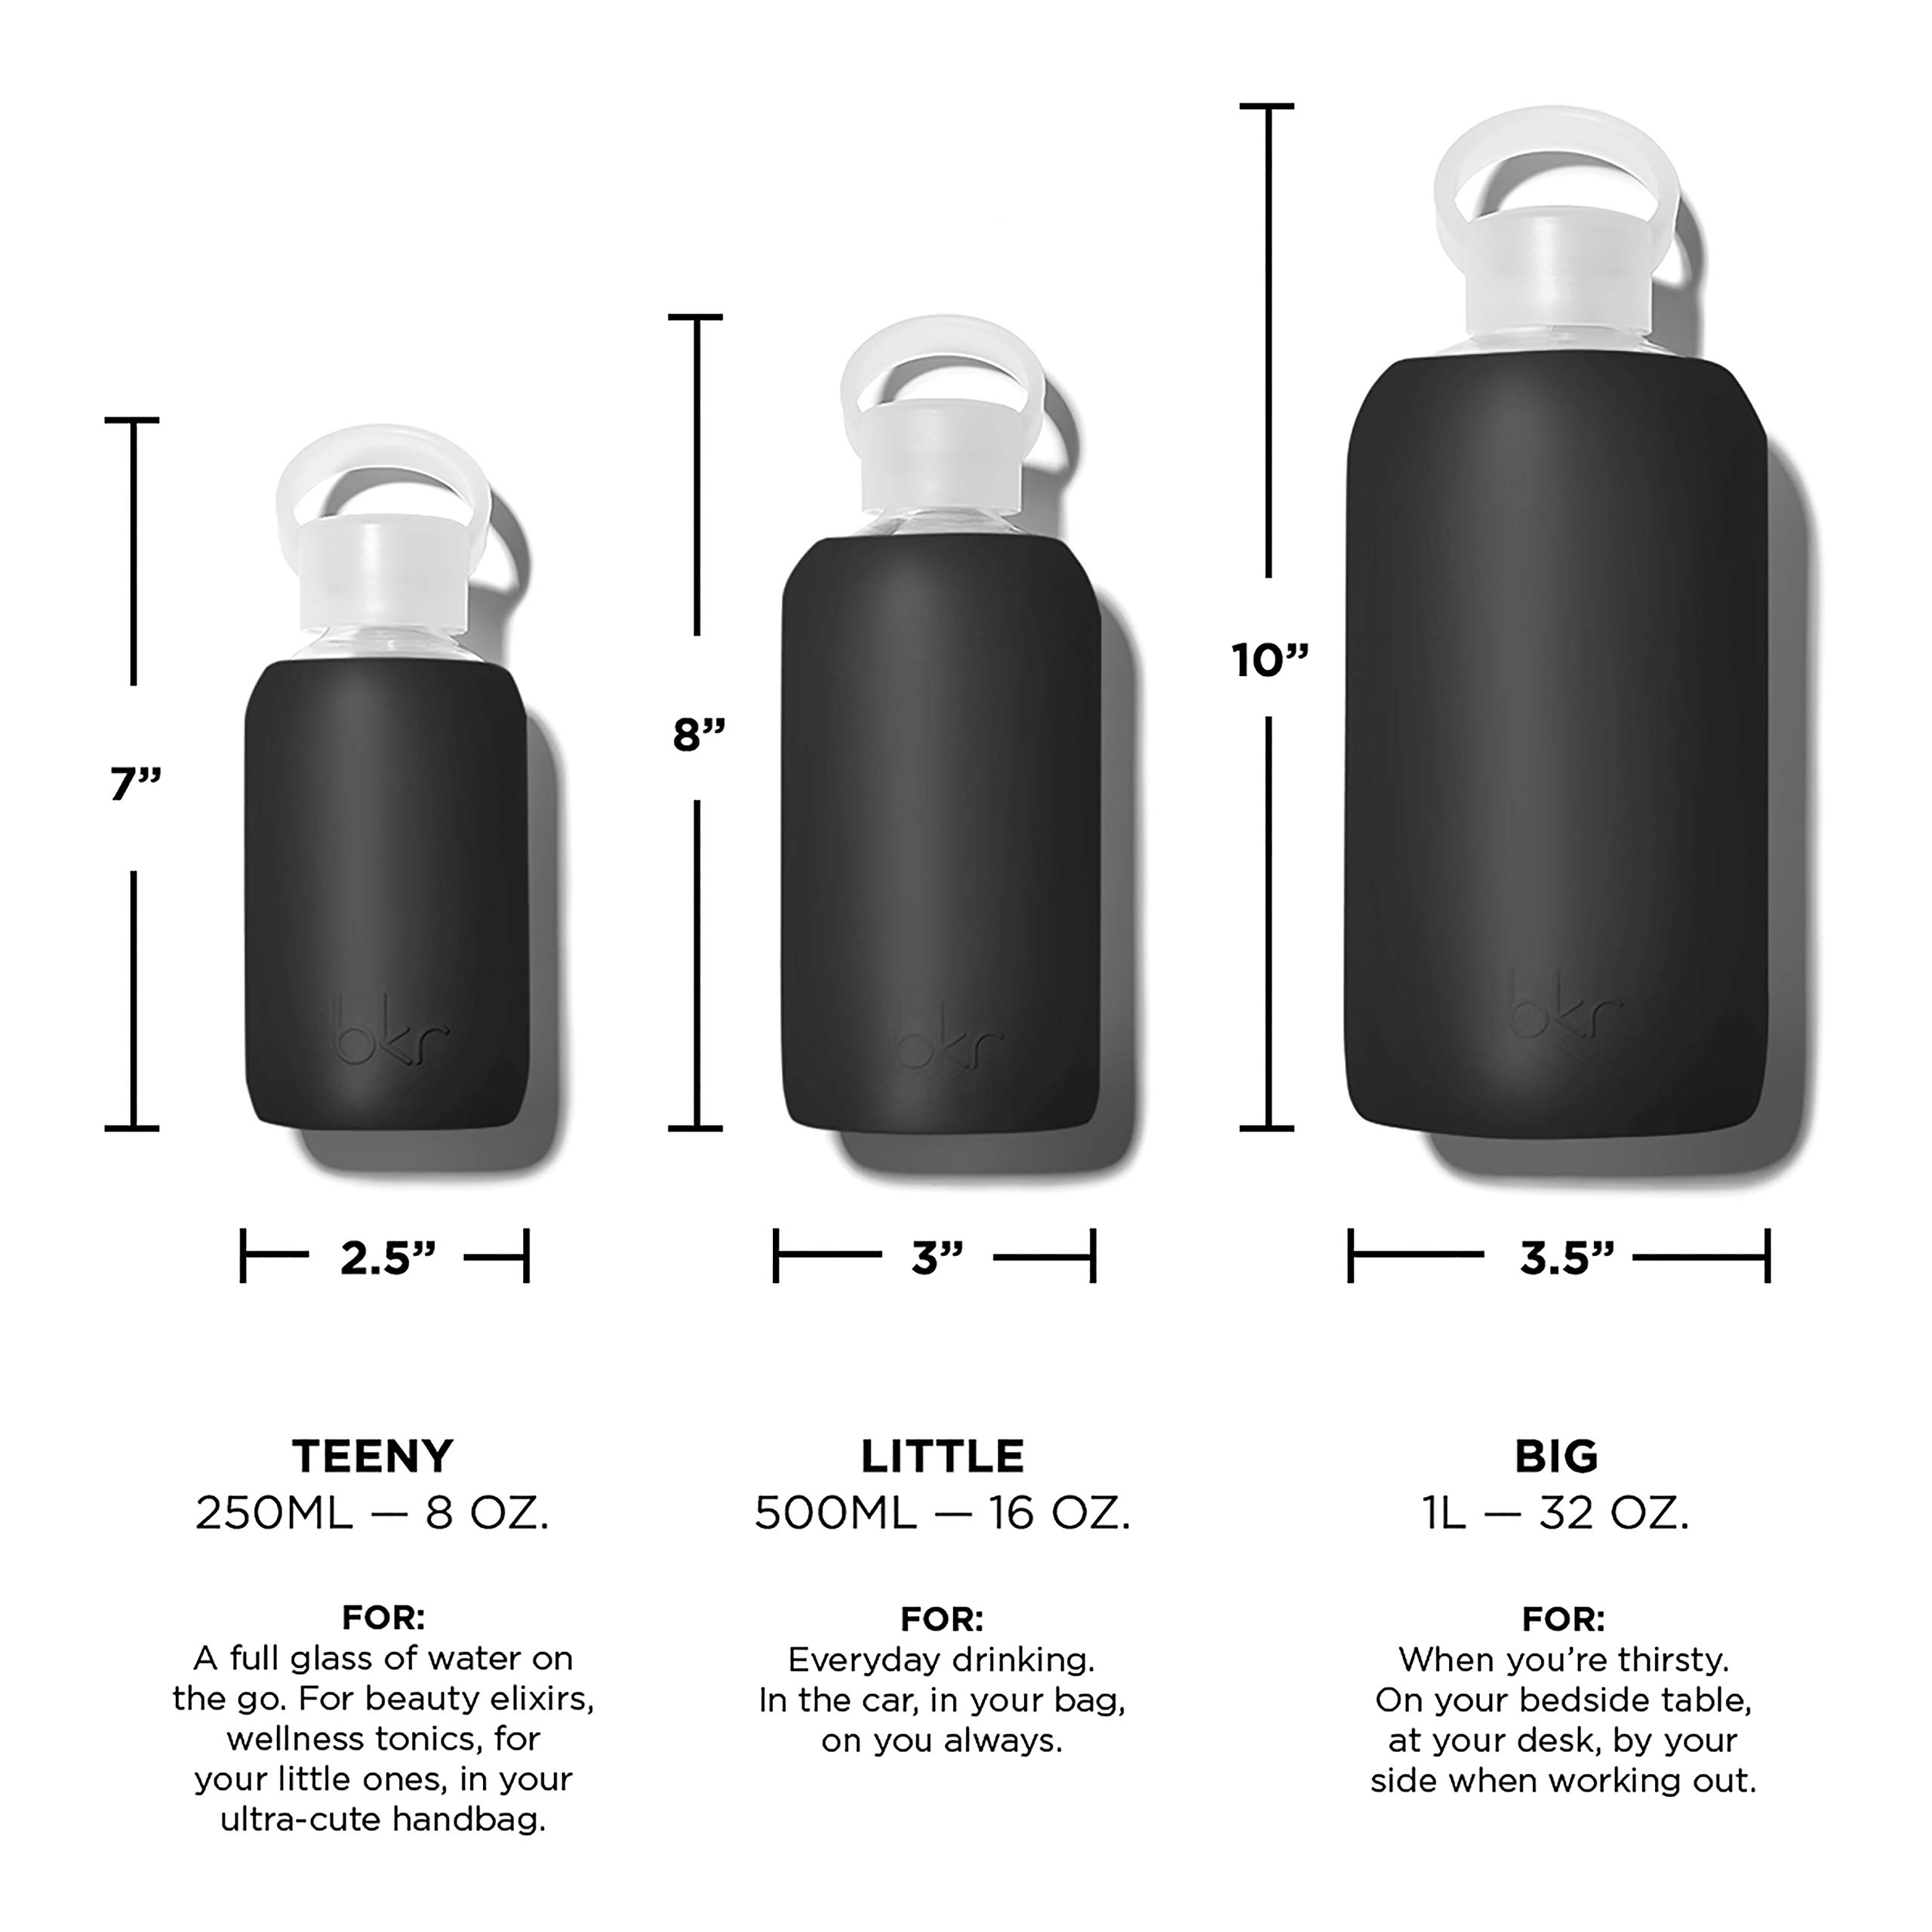 bkr Jet Glass Water Bottle with Smooth Silicone Sleeve for Travel, Narrow Mouth, BPA-Free & Dishwasher Safe, Opaque Black, 8 oz / 250 mL by bkr (Image #1)